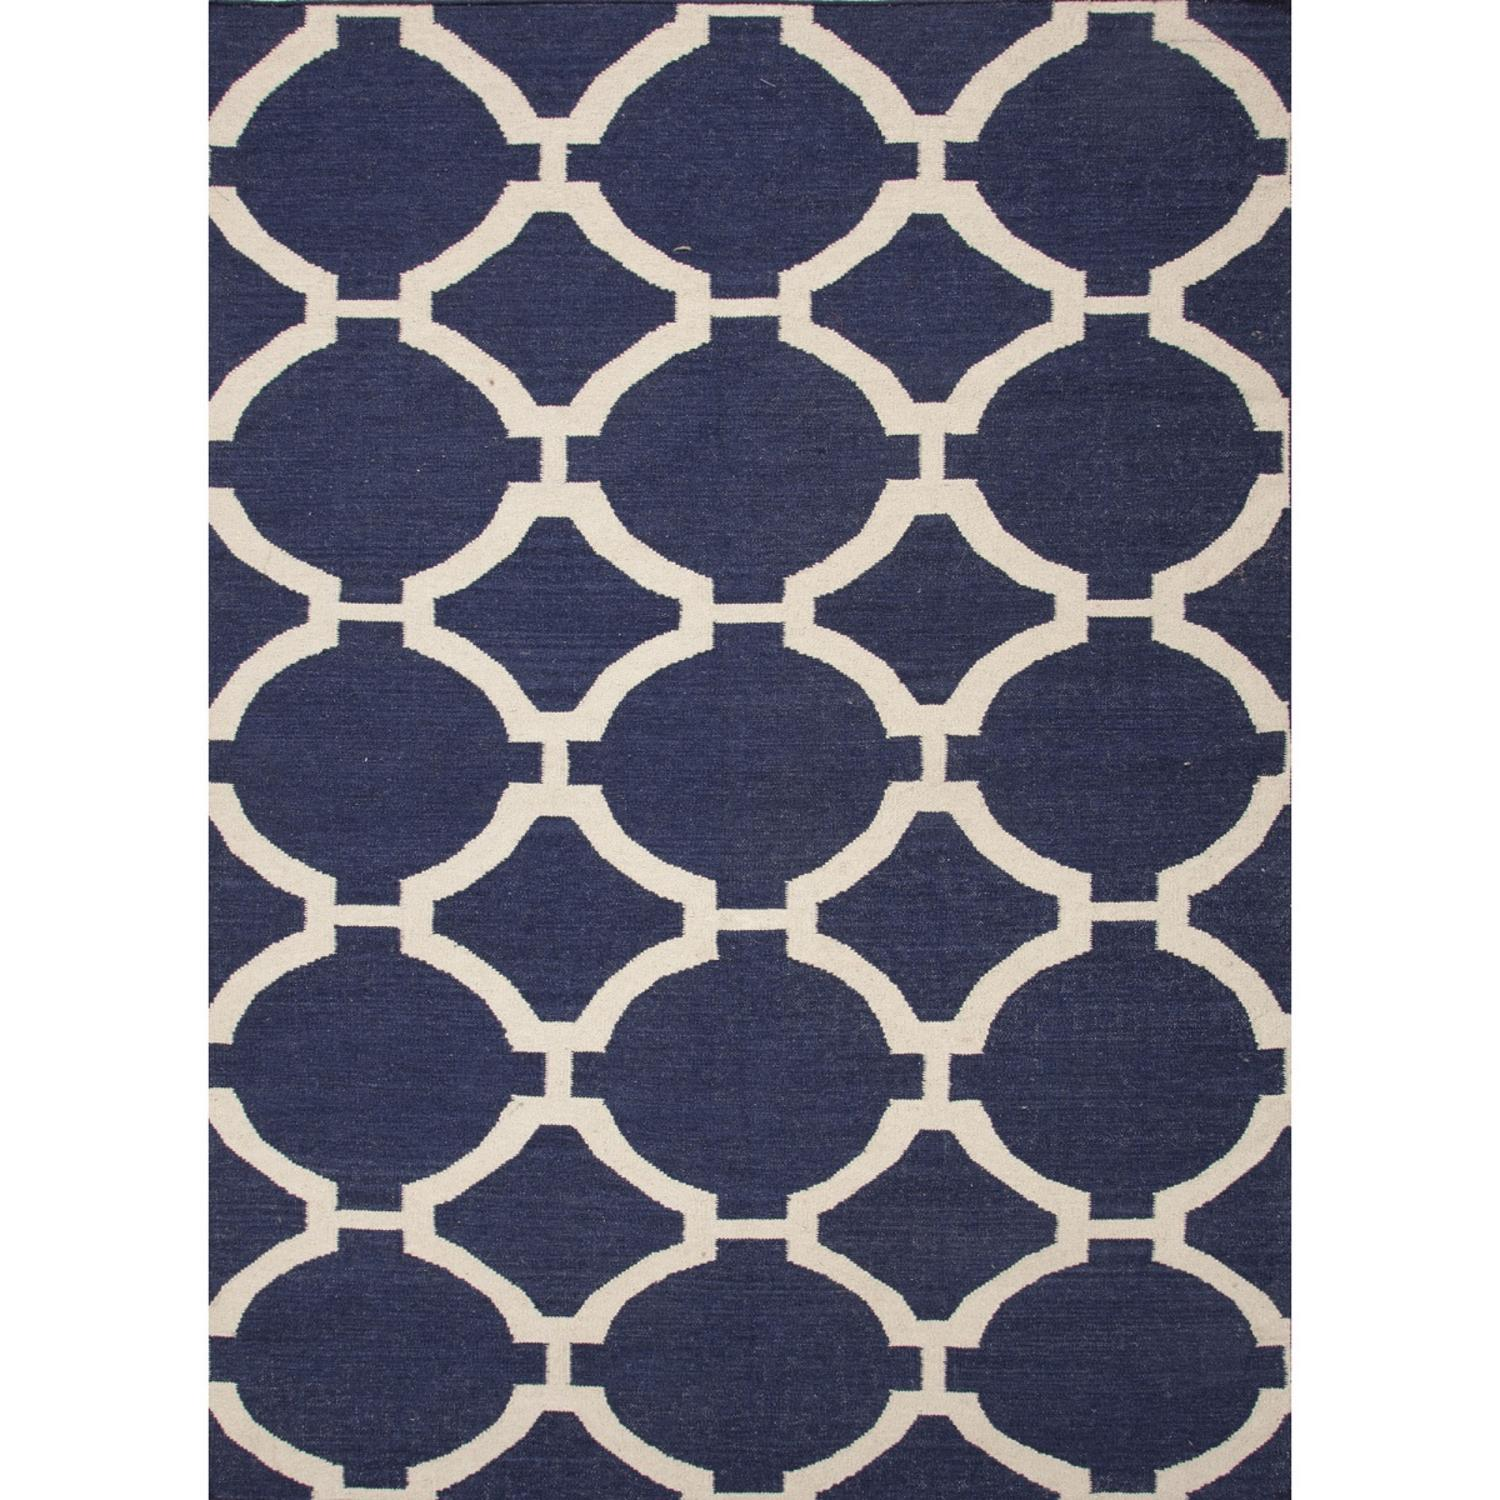 9' x 12' Navy Blue and White Flat Weave Rafi Wool Area Throw Rug